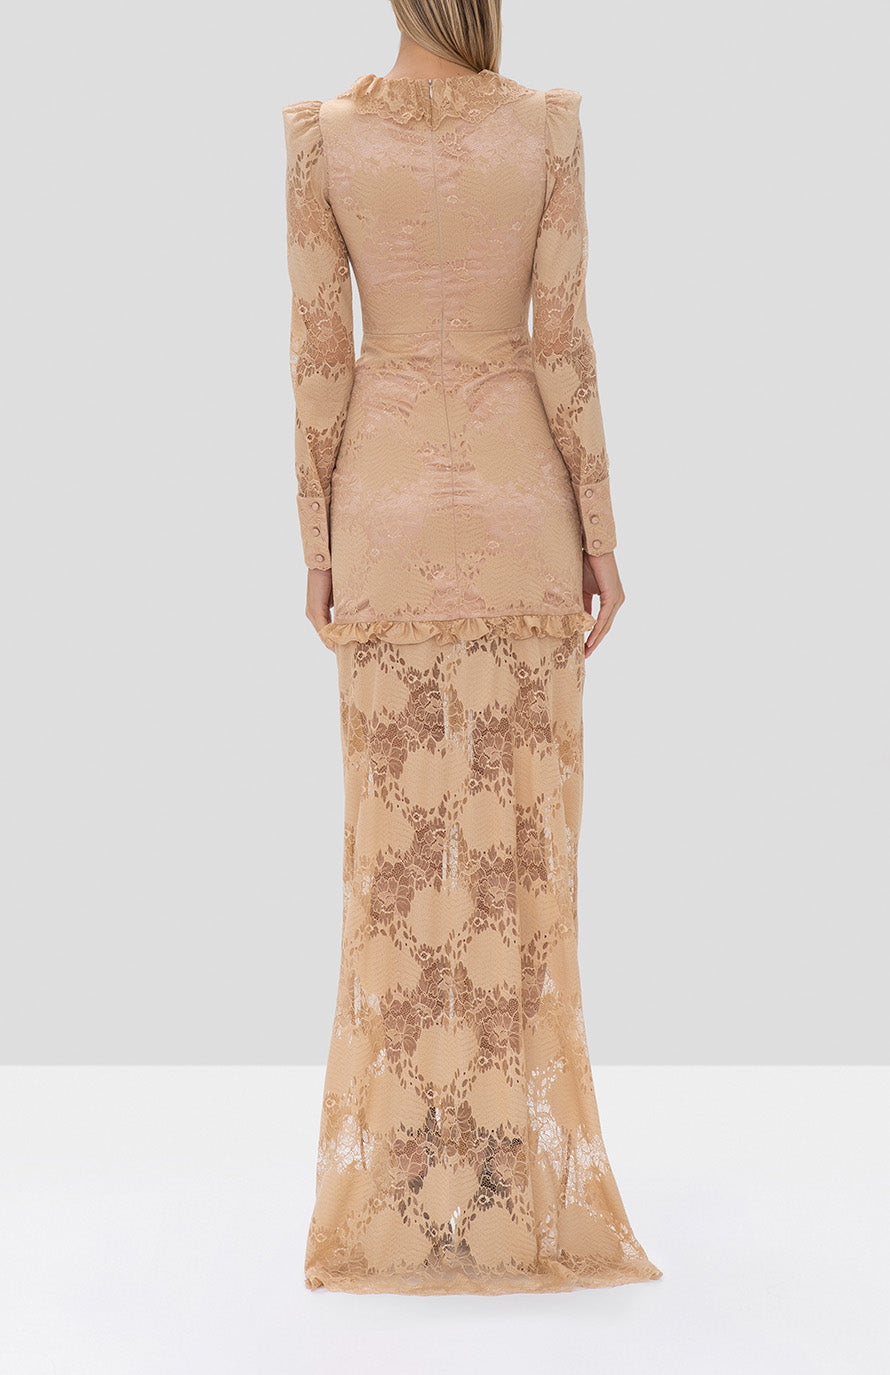 Alexis Lucasta Dress in Sand from the Fall Winter 2019 Ready To Wear Collection  - Rear View